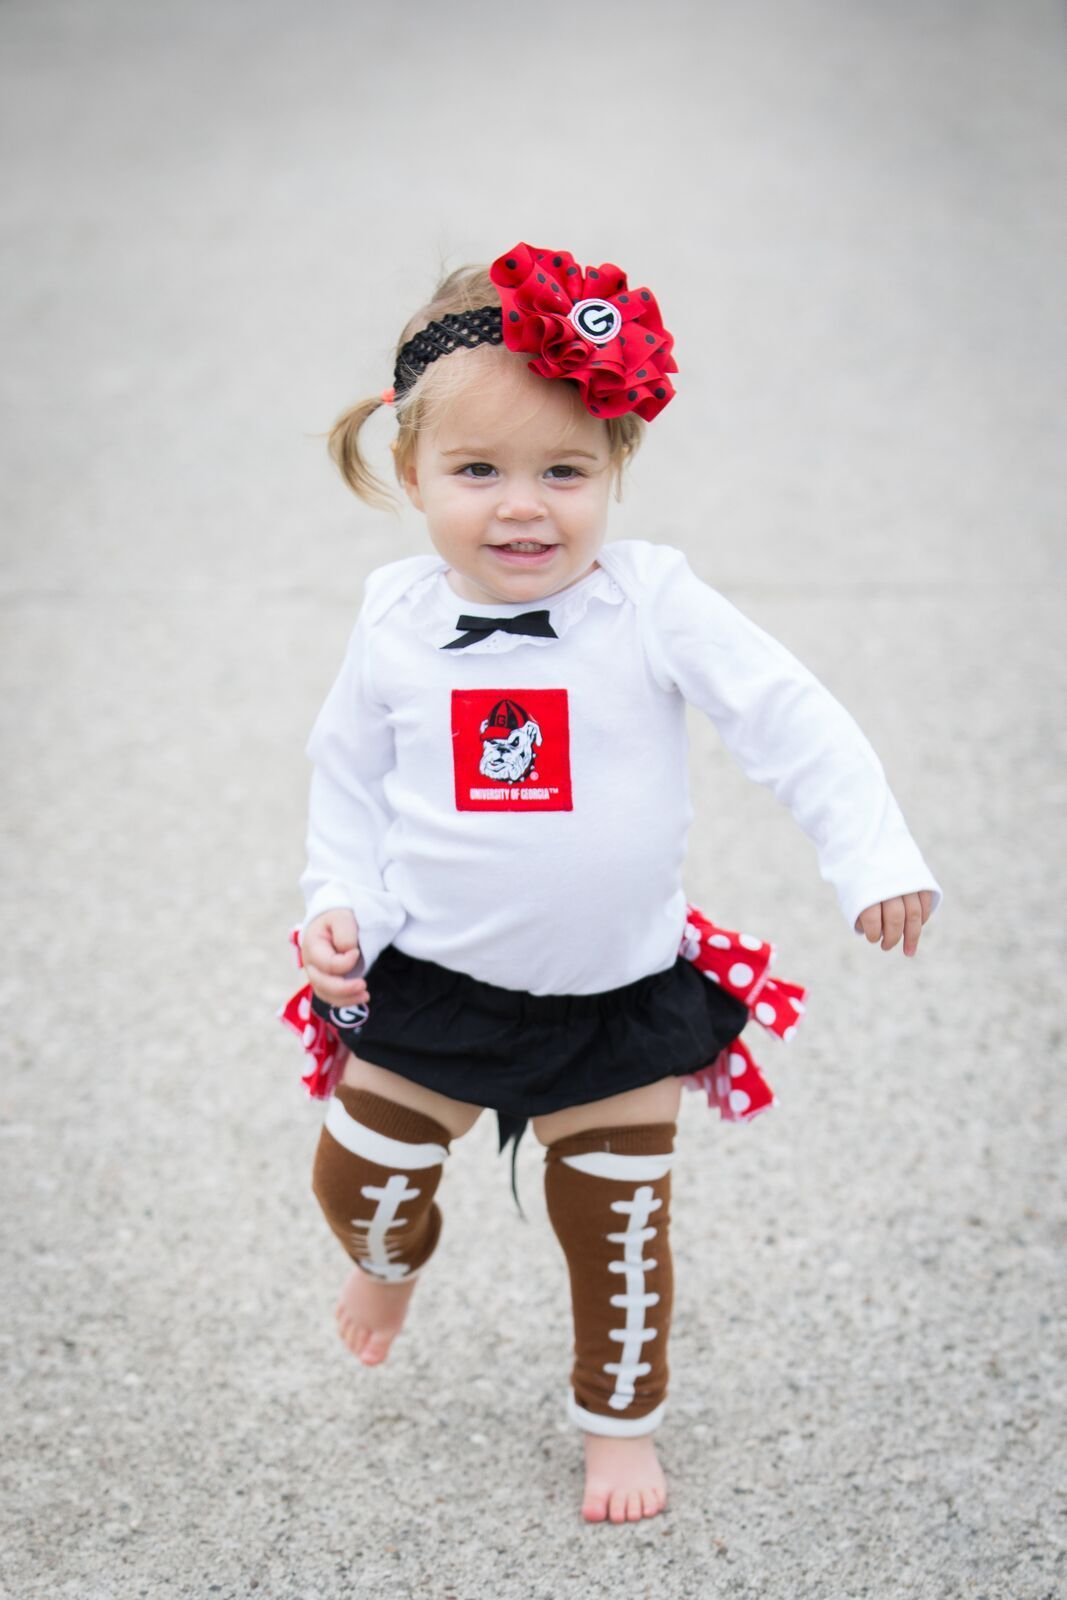 cf12a7d04 Baby Girls Georgia Bulldogs Game Day Ready Outfit. Girls Cardinals  Cheerleader Ruffled Bloomer Outfit Headin' off to the game? Tailgaters?  Gameday spirit?